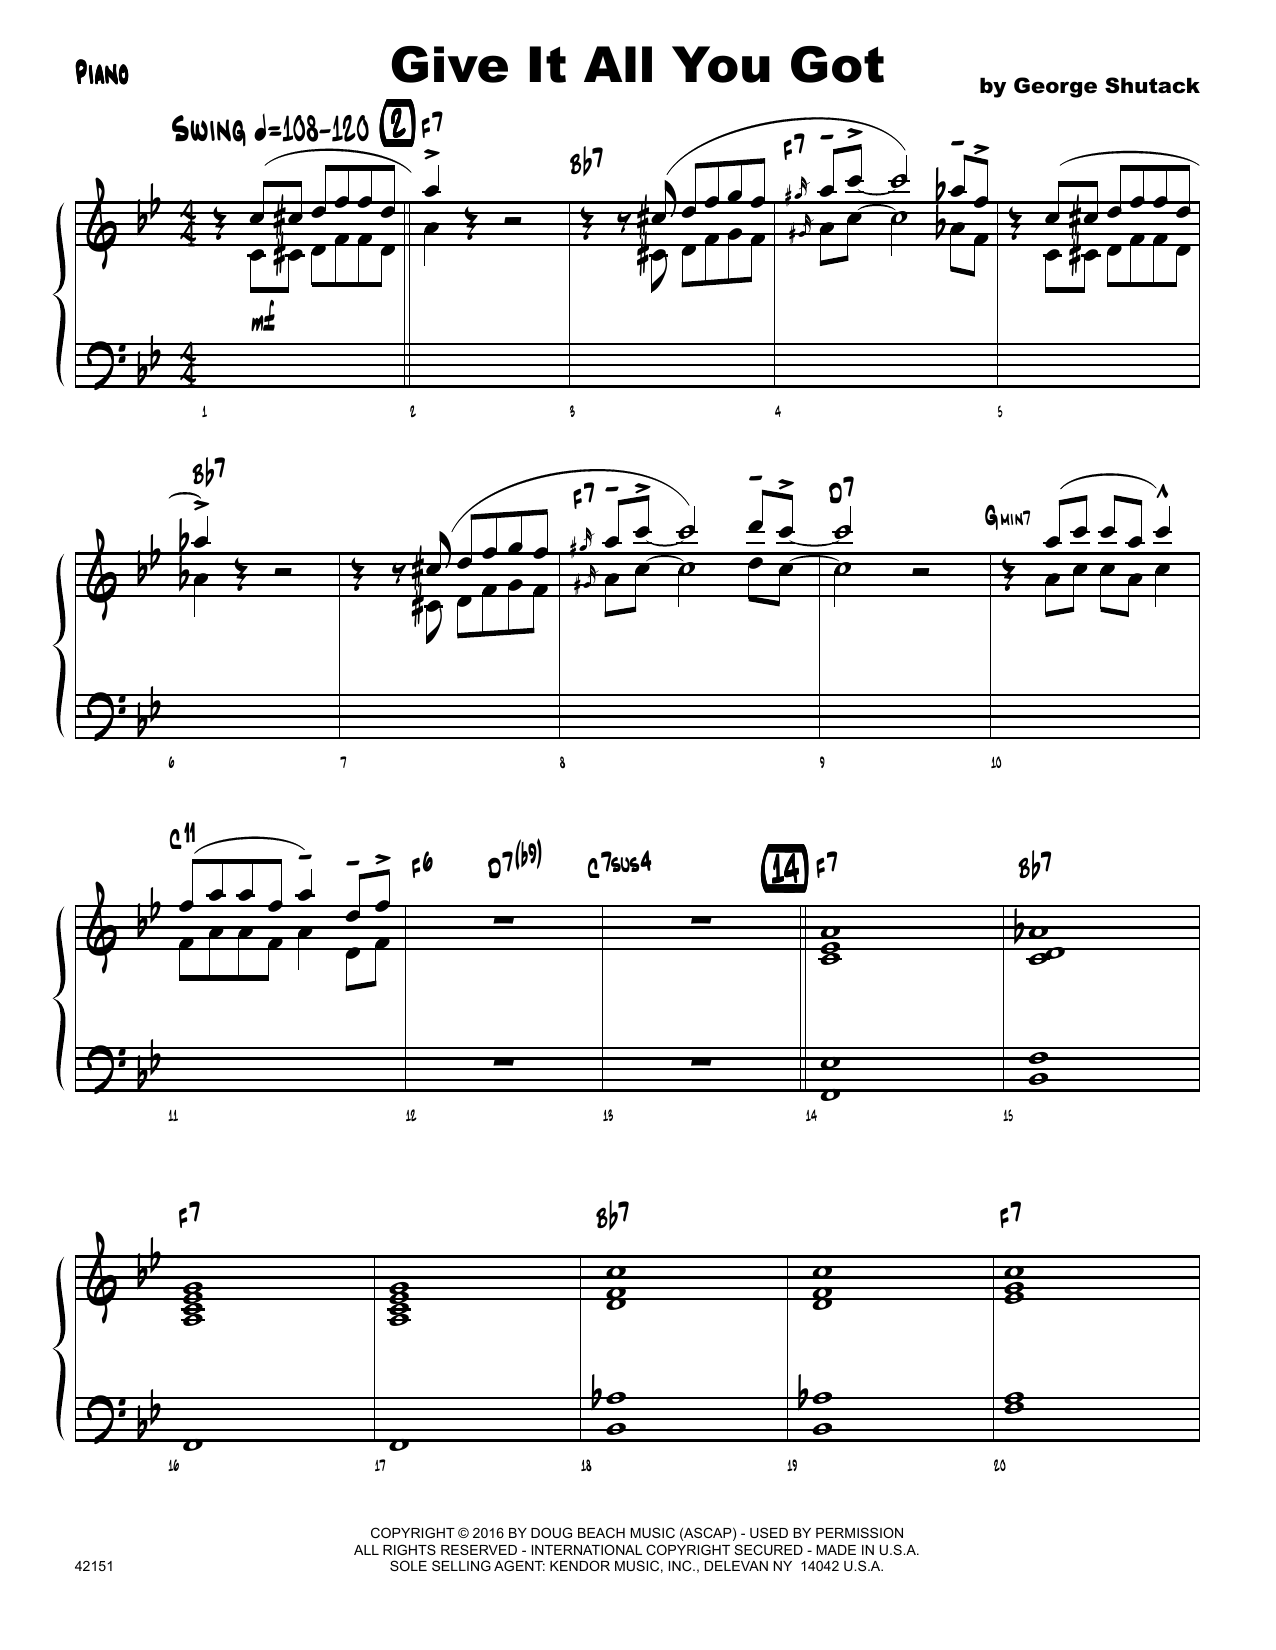 Give It All You Got - Piano Sheet Music